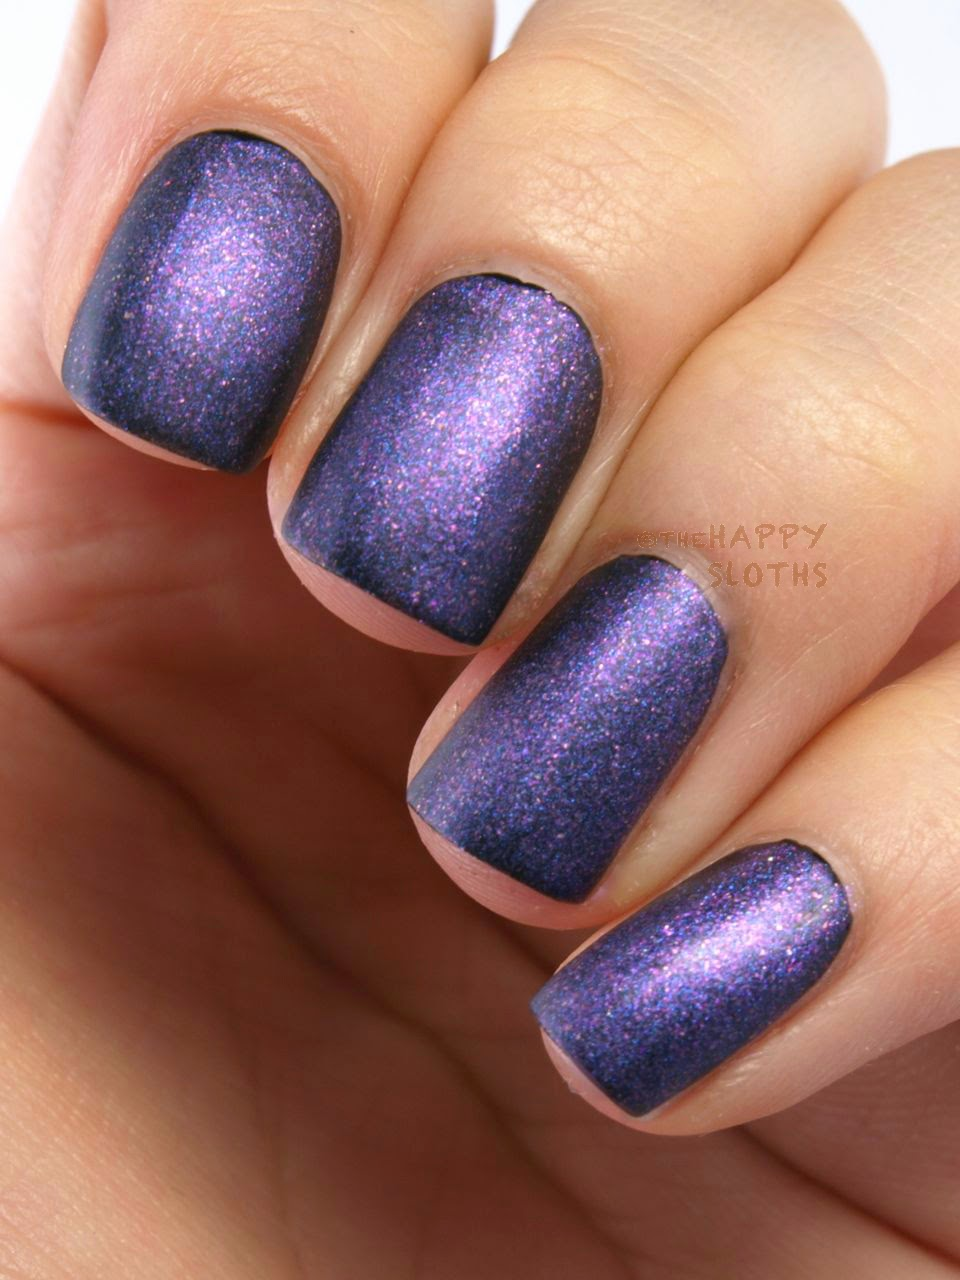 Revlon Spring 2015 Transforming Effects Top Coat: Review and Swatches Matte Pearl Glaze